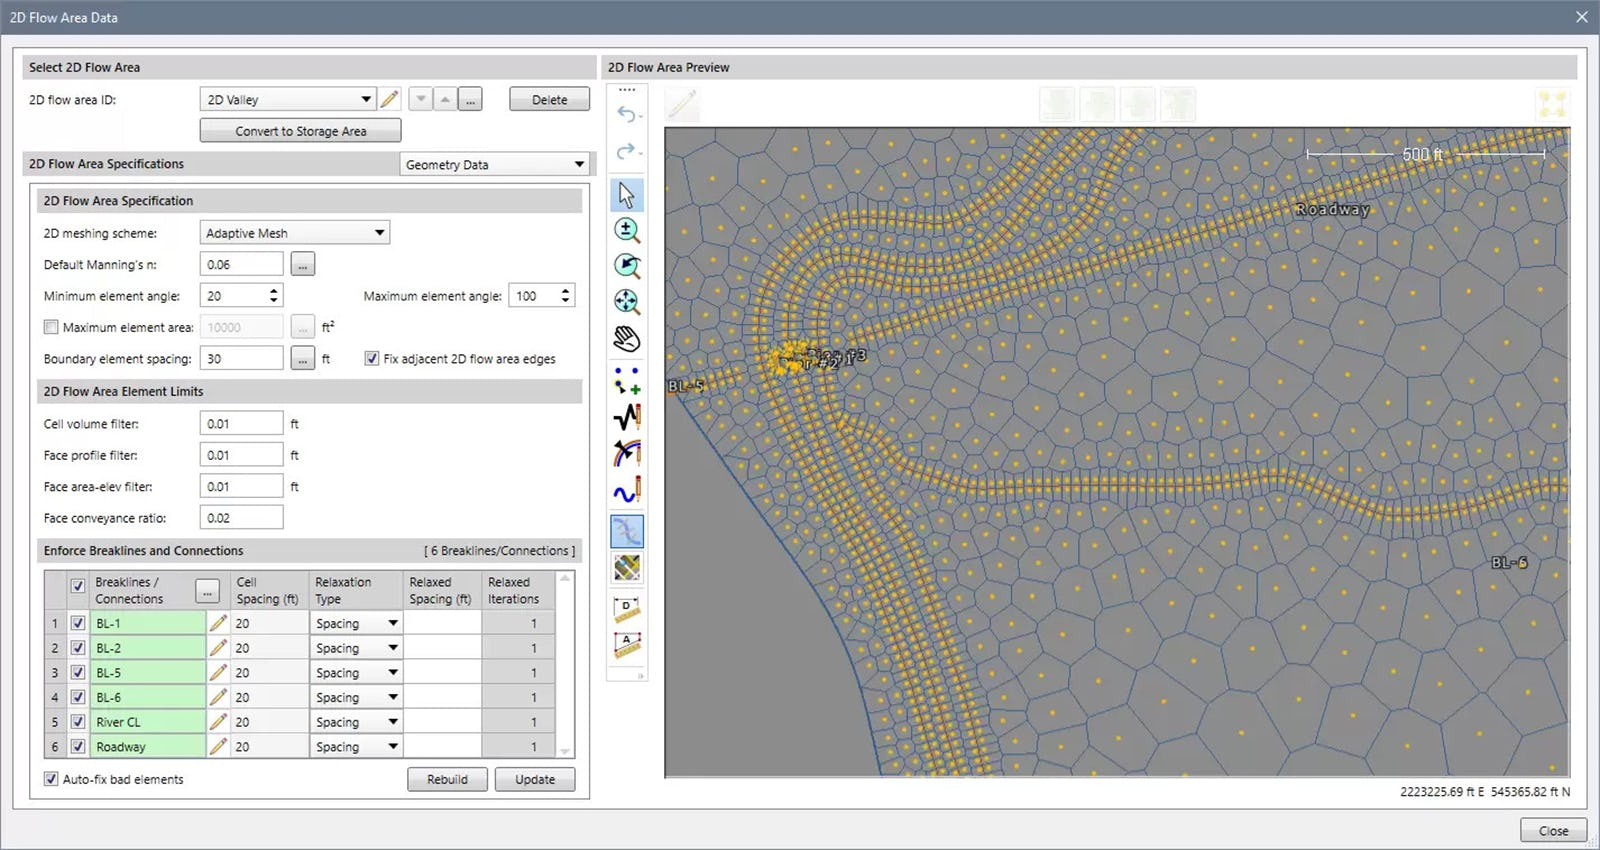 In addition to HEC-RAS' default rectangular (structured) 2D computational mesh, the software can create an adaptive 2D mesh to better represent more complicated 2D flow conditions and structures.